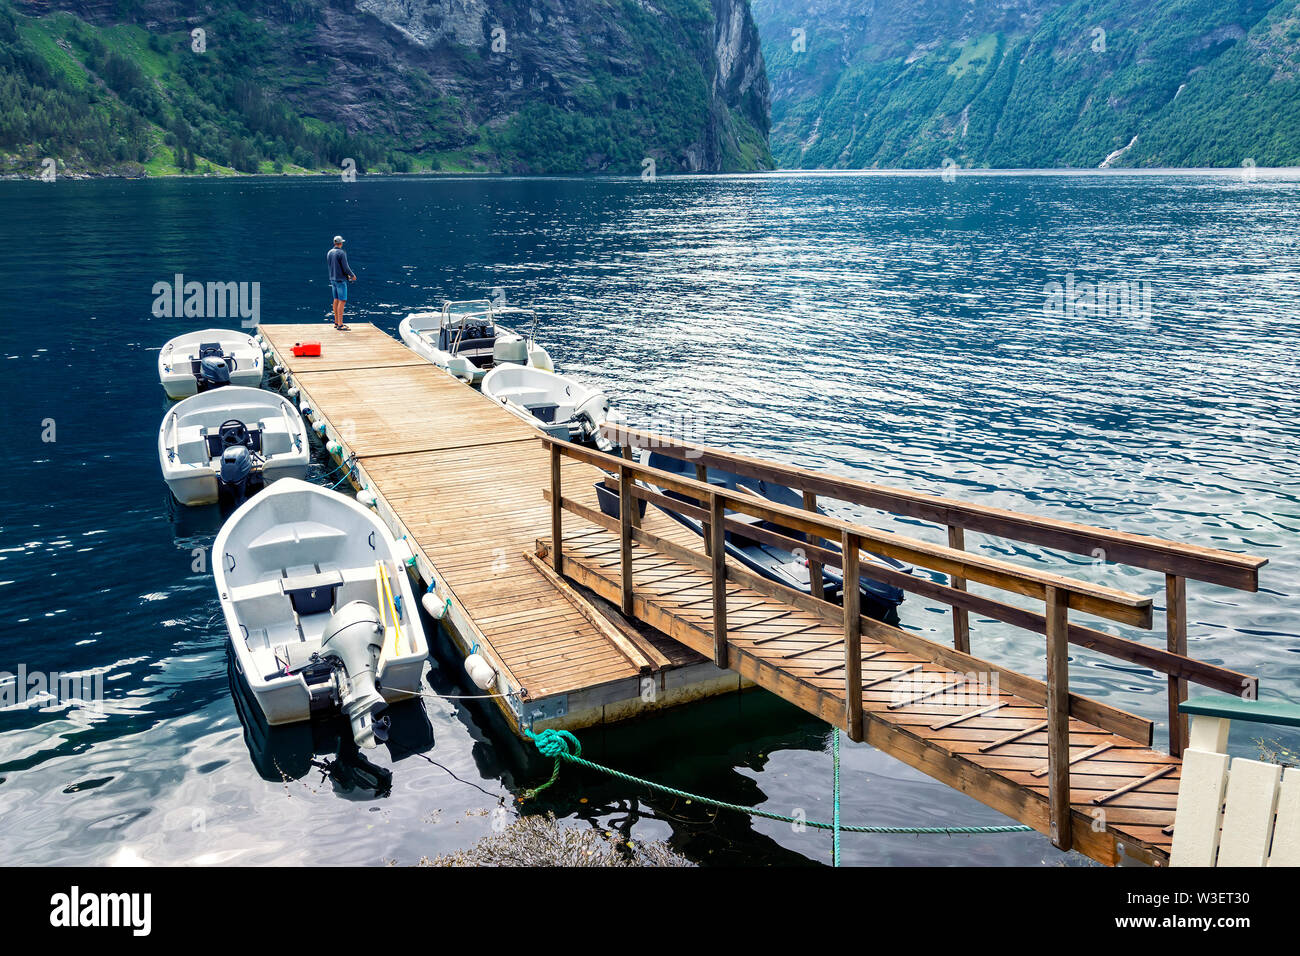 Leisure time on the pier with small boats docked in the Geirangerfjord , Sunnmore region, Norway, most beautiful fjords in the world. - Stock Image